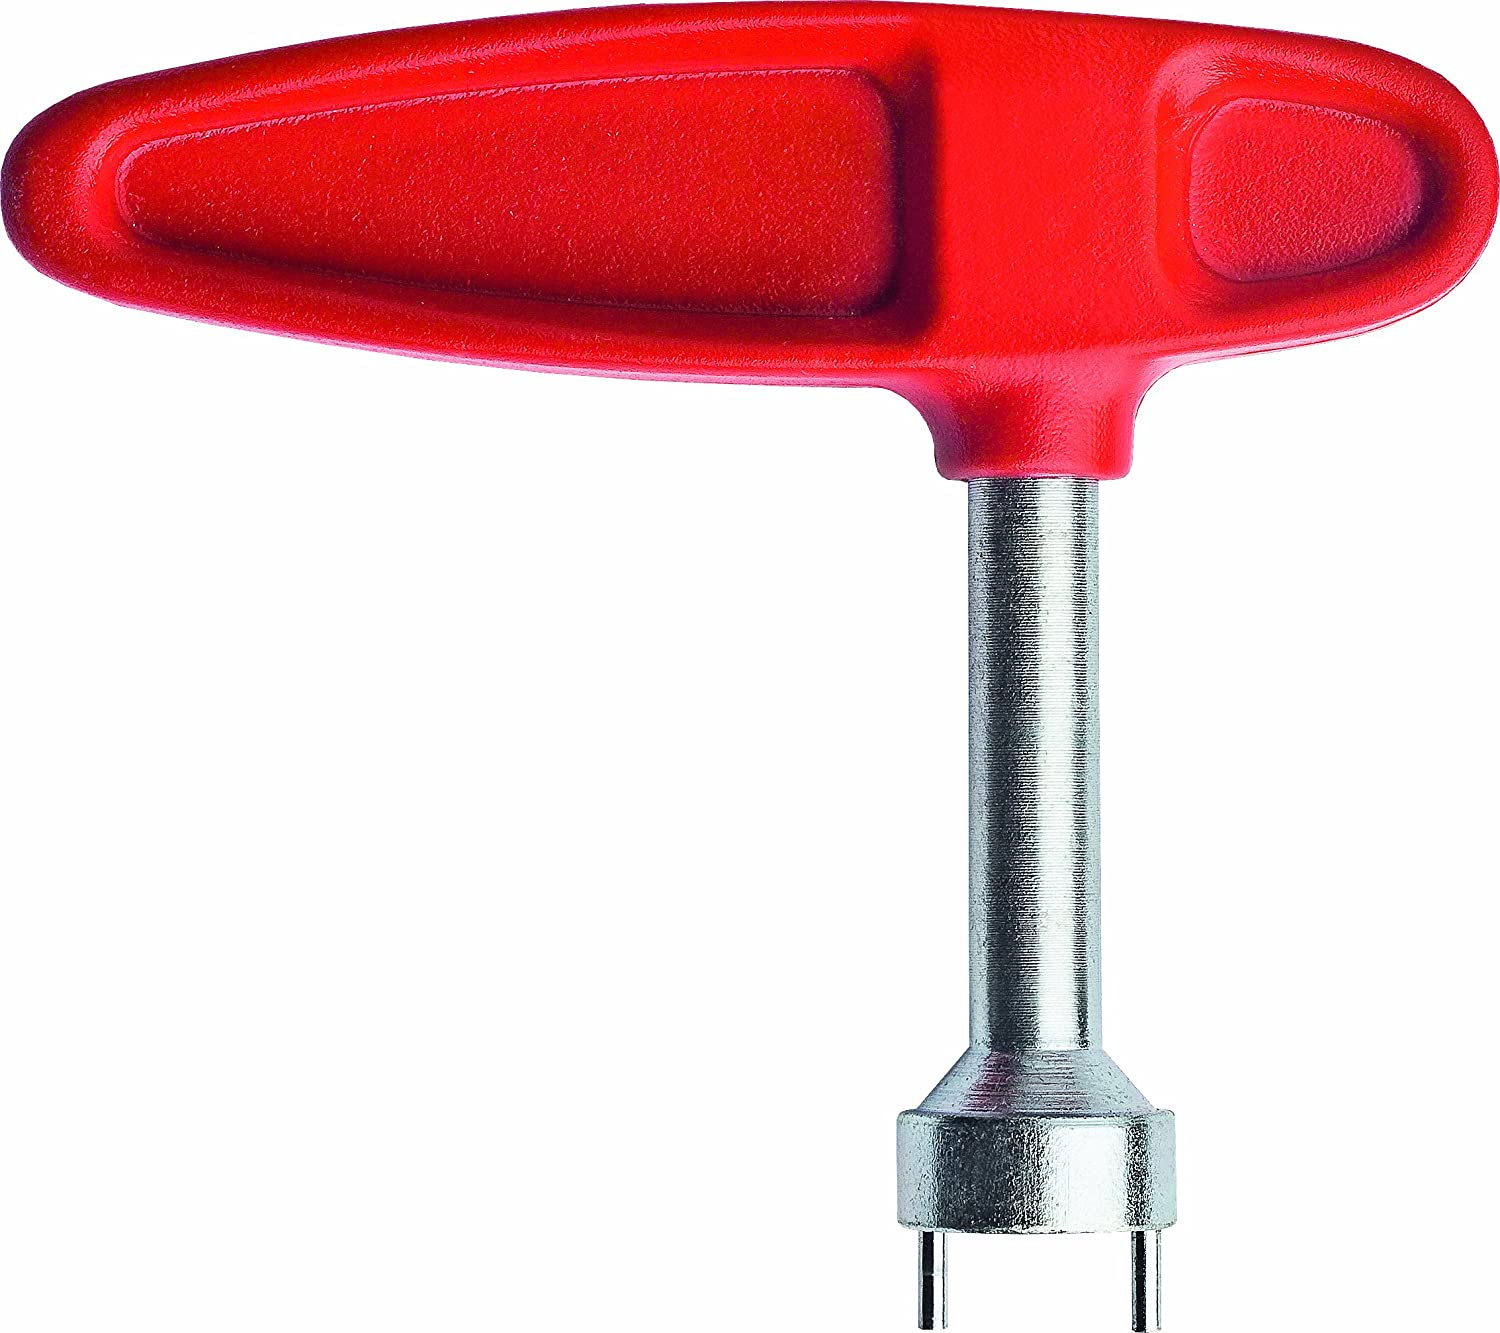 Longridge Unisexs SPIKE WRENCH Red ONE SIZE